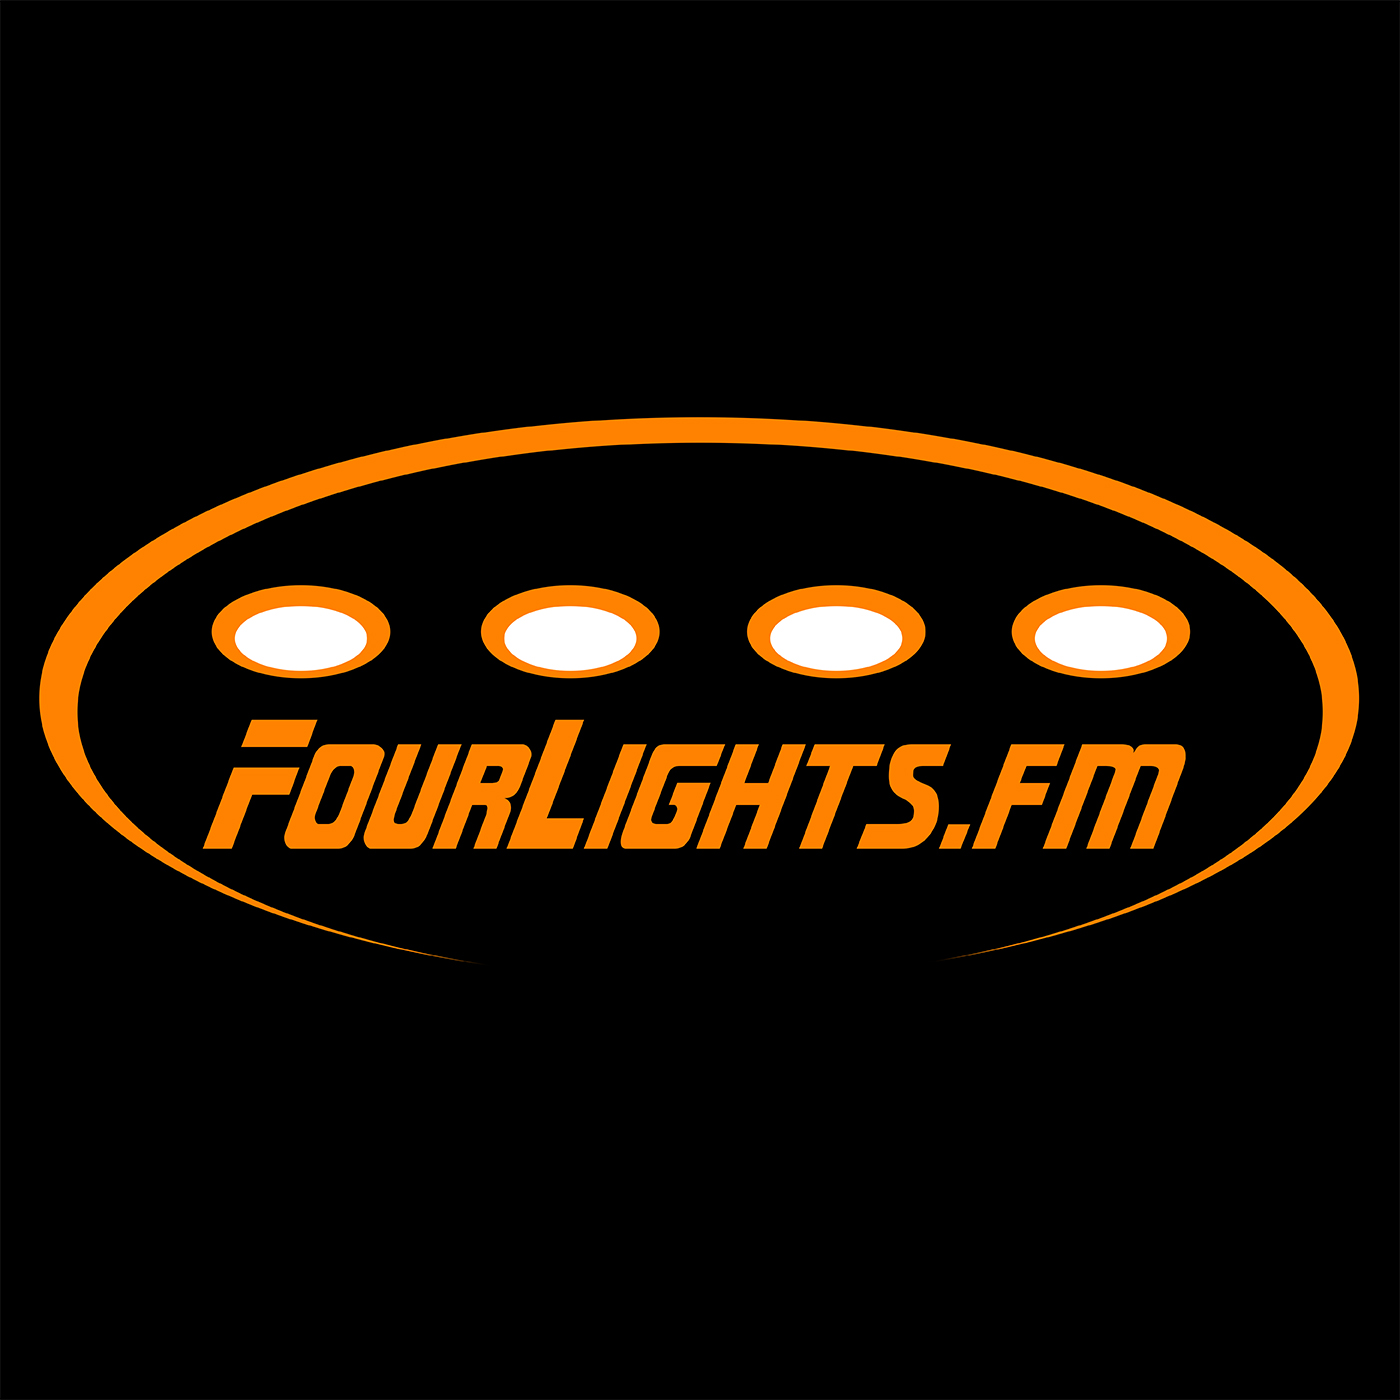 Four Lights FM